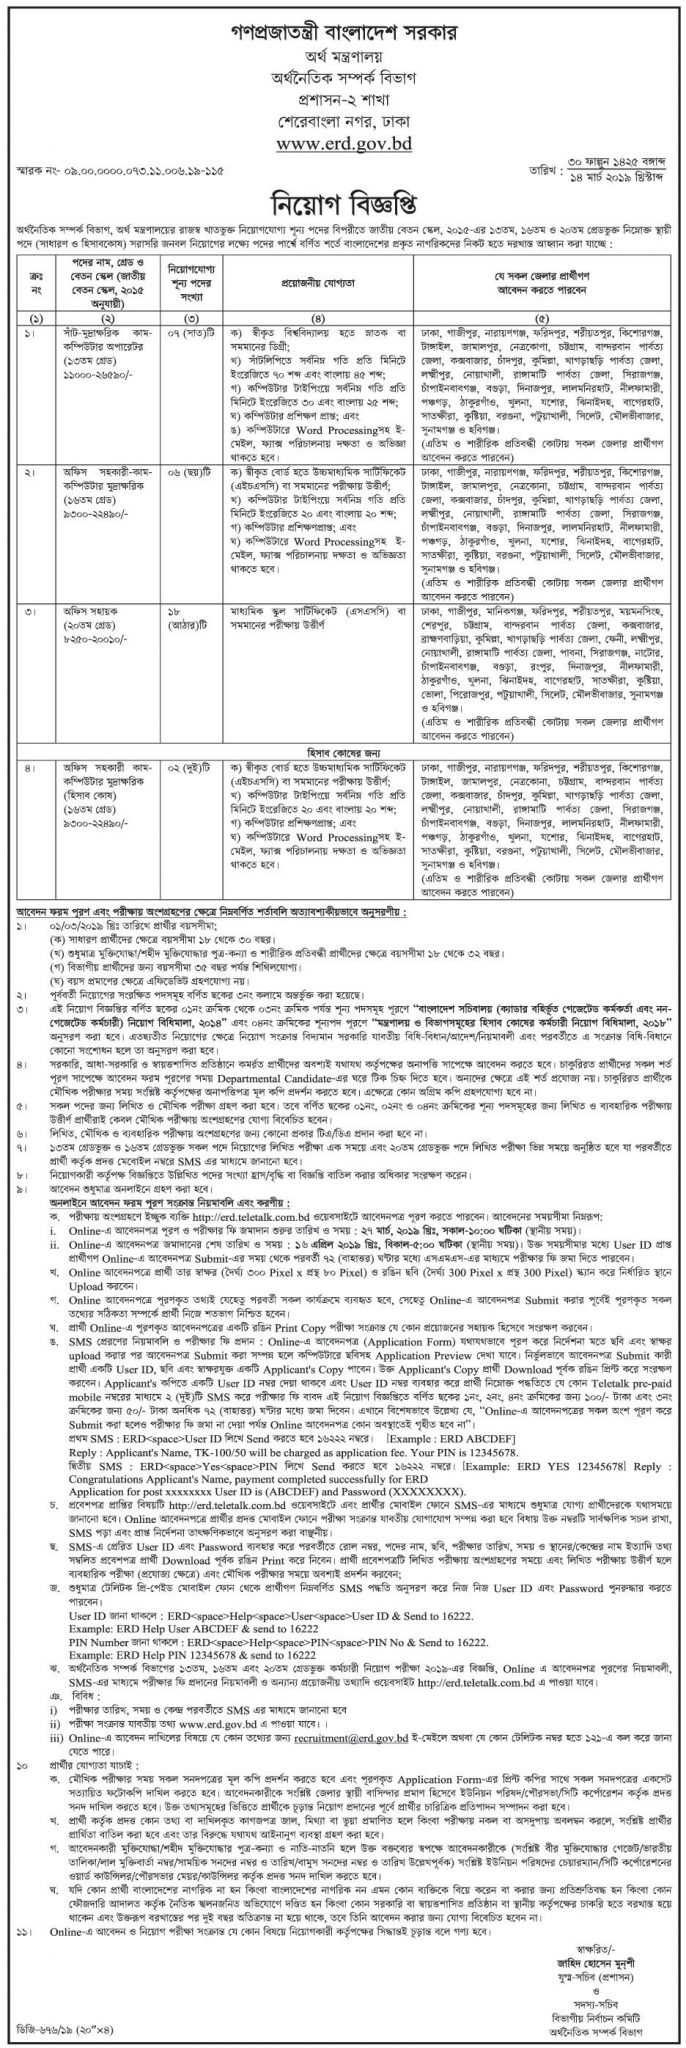 Bangladesh Ministry of Finance and Finance Division Job Circular 2019